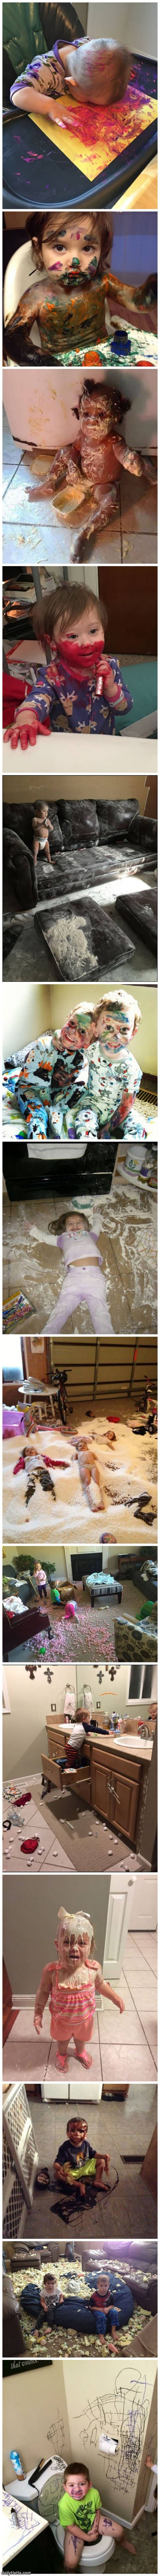 kids having fun and making a mess funny picture